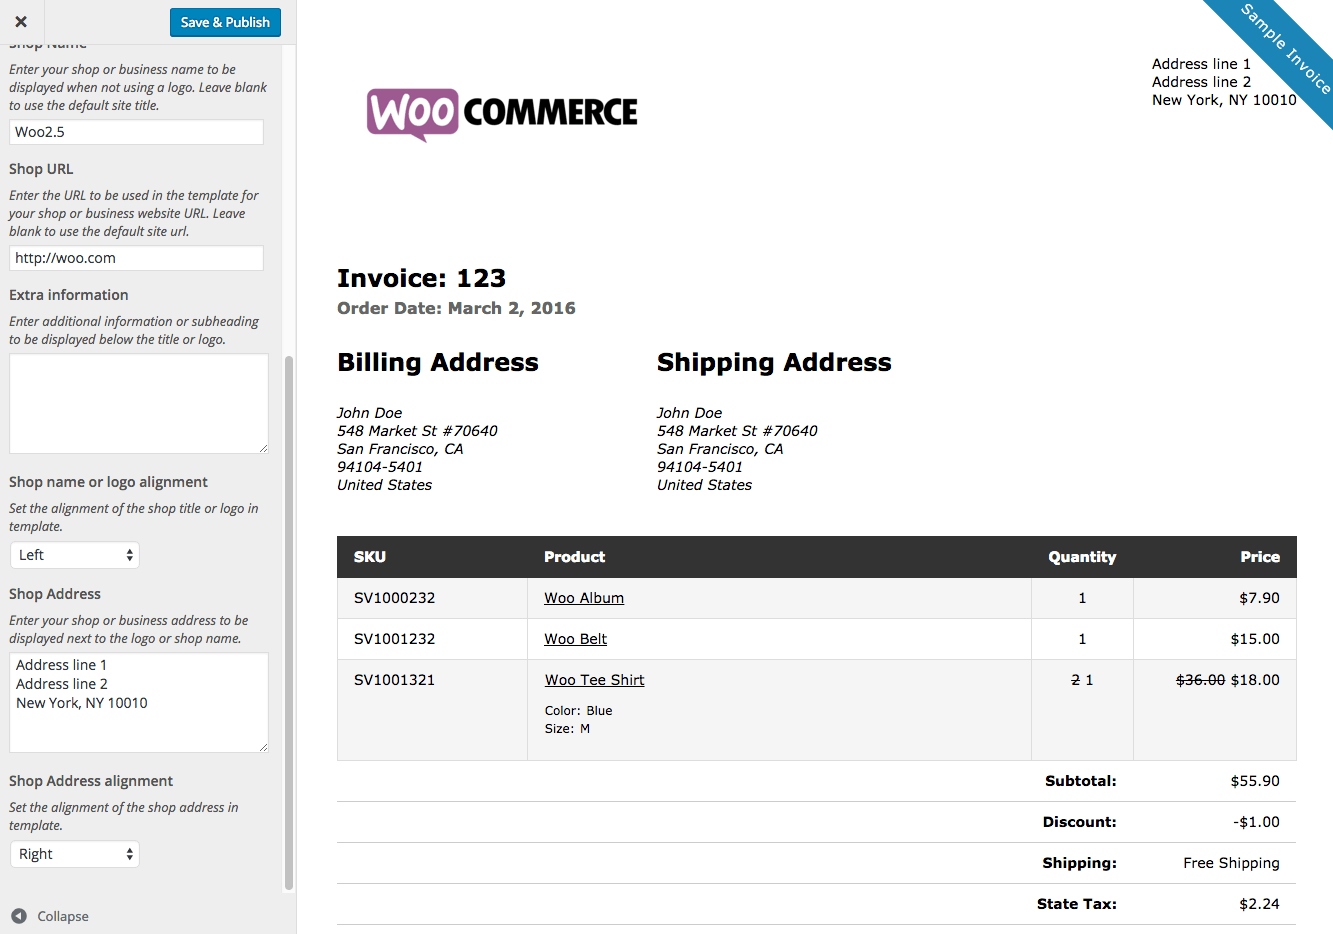 Usdgus  Outstanding Woocommerce Print Invoices Amp Packing Lists  Woocommerce Docs With Exquisite Woocommerce Print Invoices  Packing Lists Customizer With Comely Treasury Receipts Also Abortion Receipt In Addition Enterprise Toll Receipts And Petco Return Policy No Receipt As Well As Best Buy Returns Without Receipt Additionally Delta Receipts From Docswoocommercecom With Usdgus  Exquisite Woocommerce Print Invoices Amp Packing Lists  Woocommerce Docs With Comely Woocommerce Print Invoices  Packing Lists Customizer And Outstanding Treasury Receipts Also Abortion Receipt In Addition Enterprise Toll Receipts From Docswoocommercecom